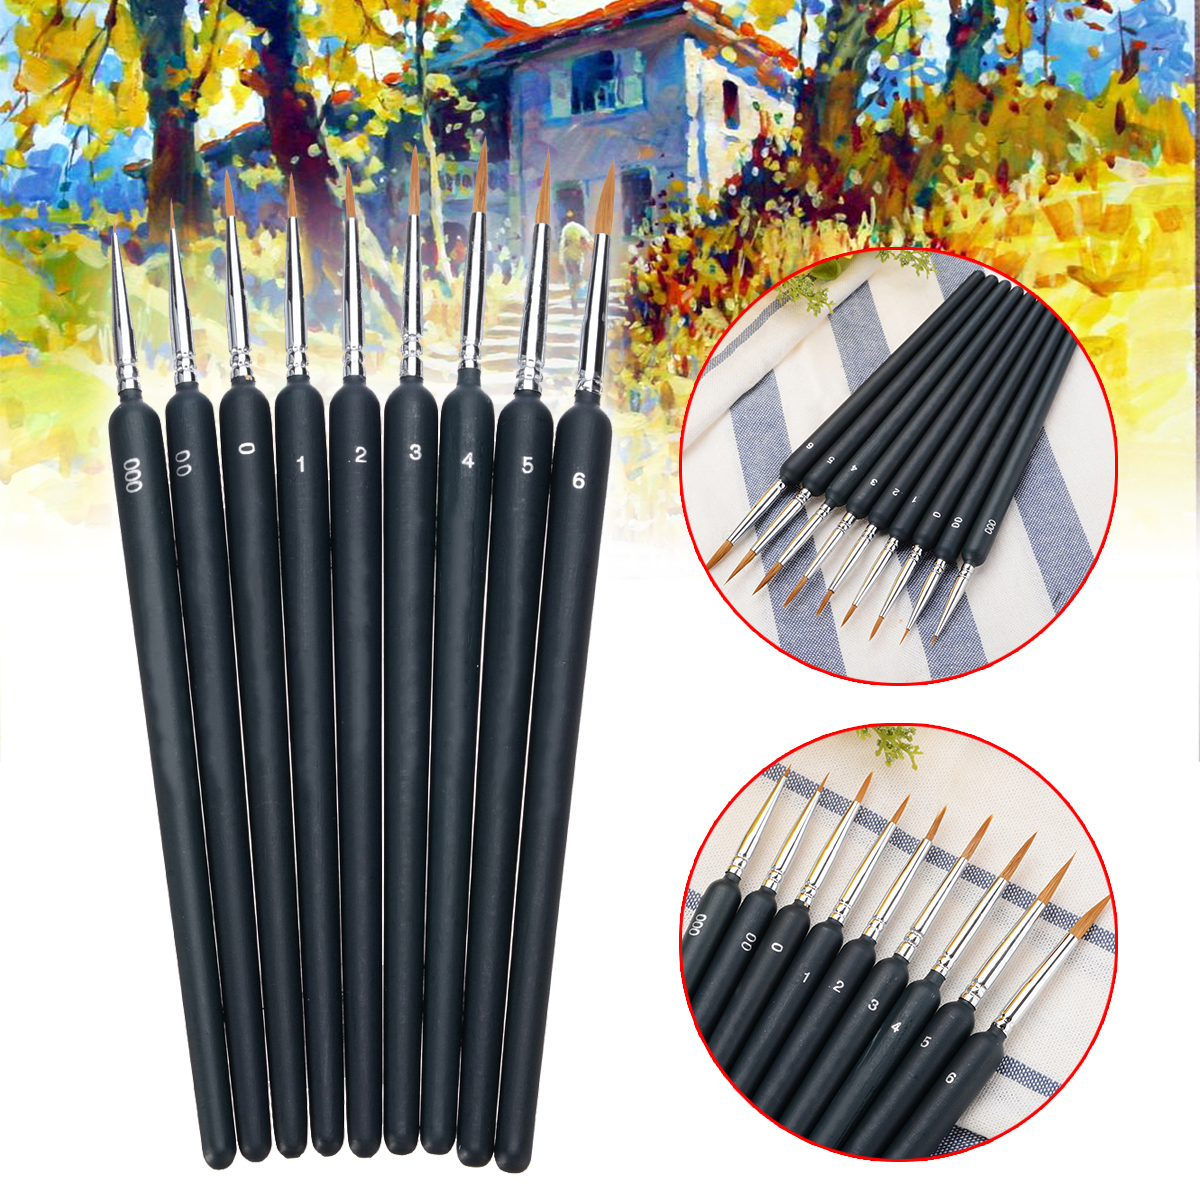 9pcs/Set Paint Brushes Artist Weasel Hair Brush Pen For Oil Painting Gouache Watercolor Paint For Beginners Drawing